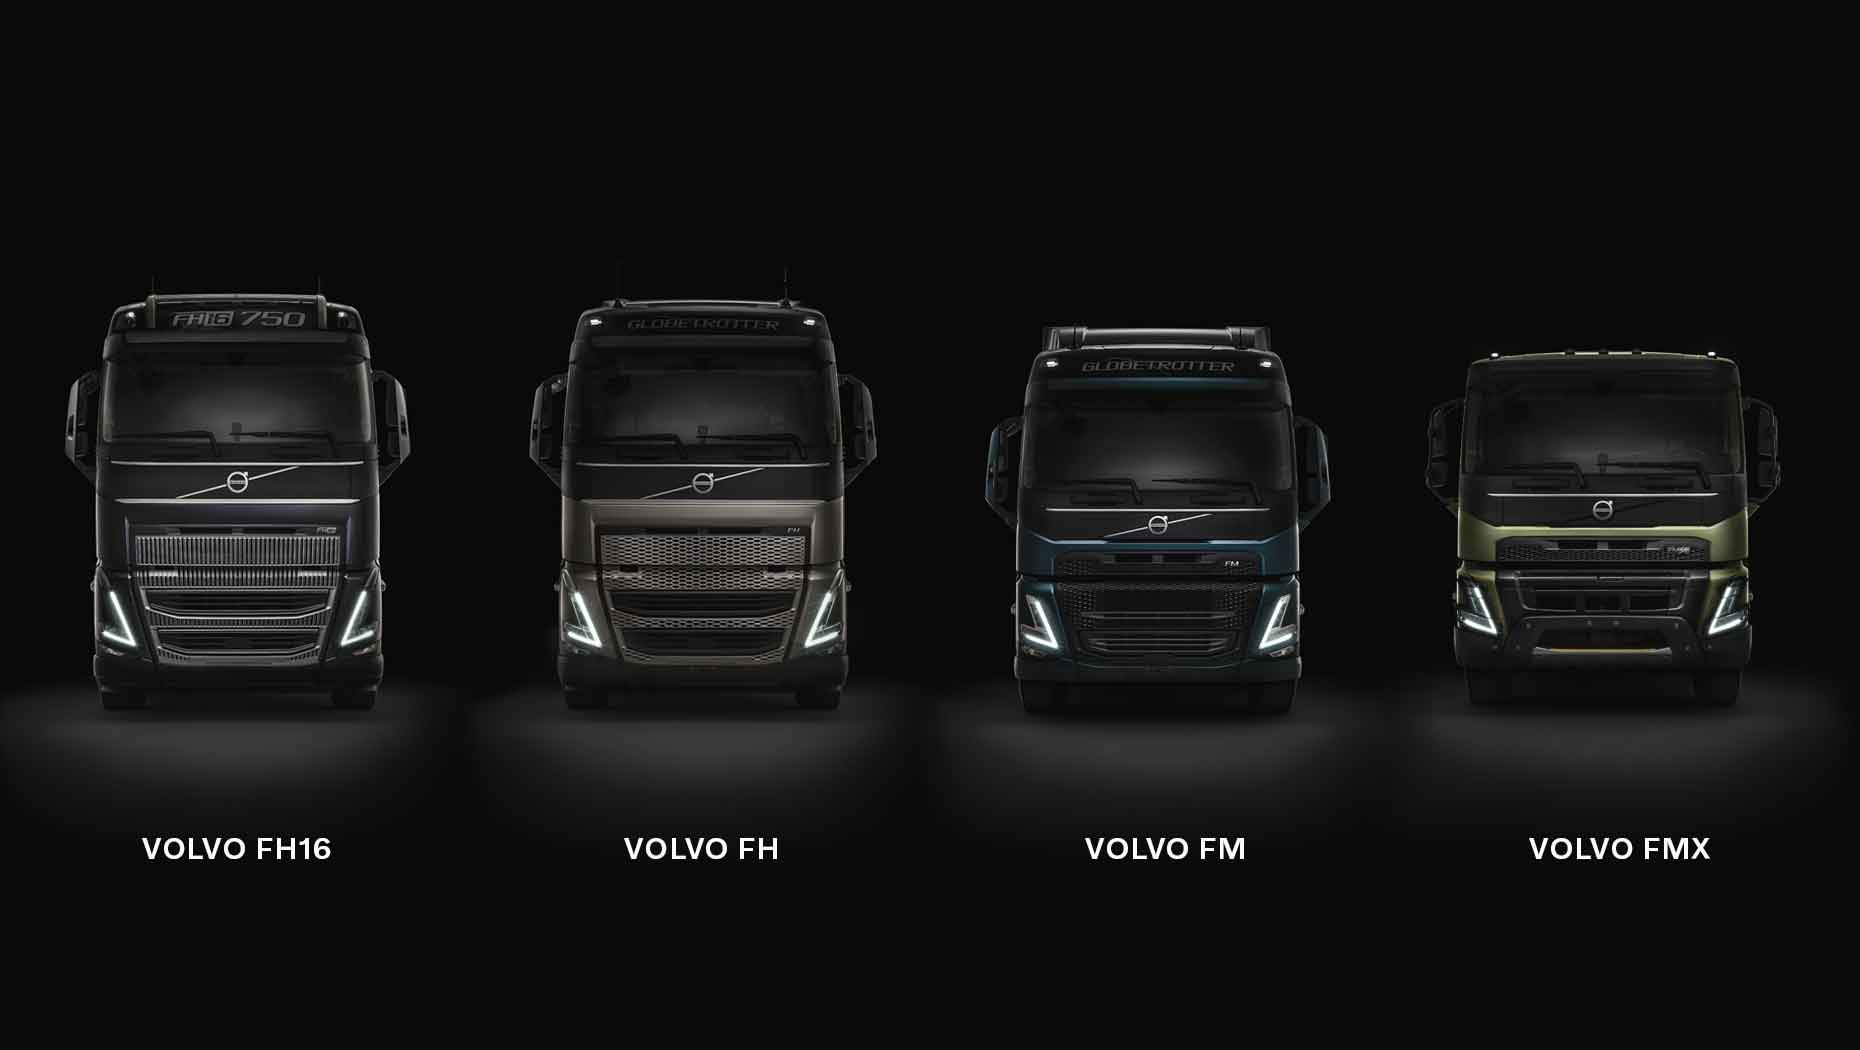 Front view of the Volvo FH16, Volvo FH, Volvo FM and Volvo FMX with a dark background